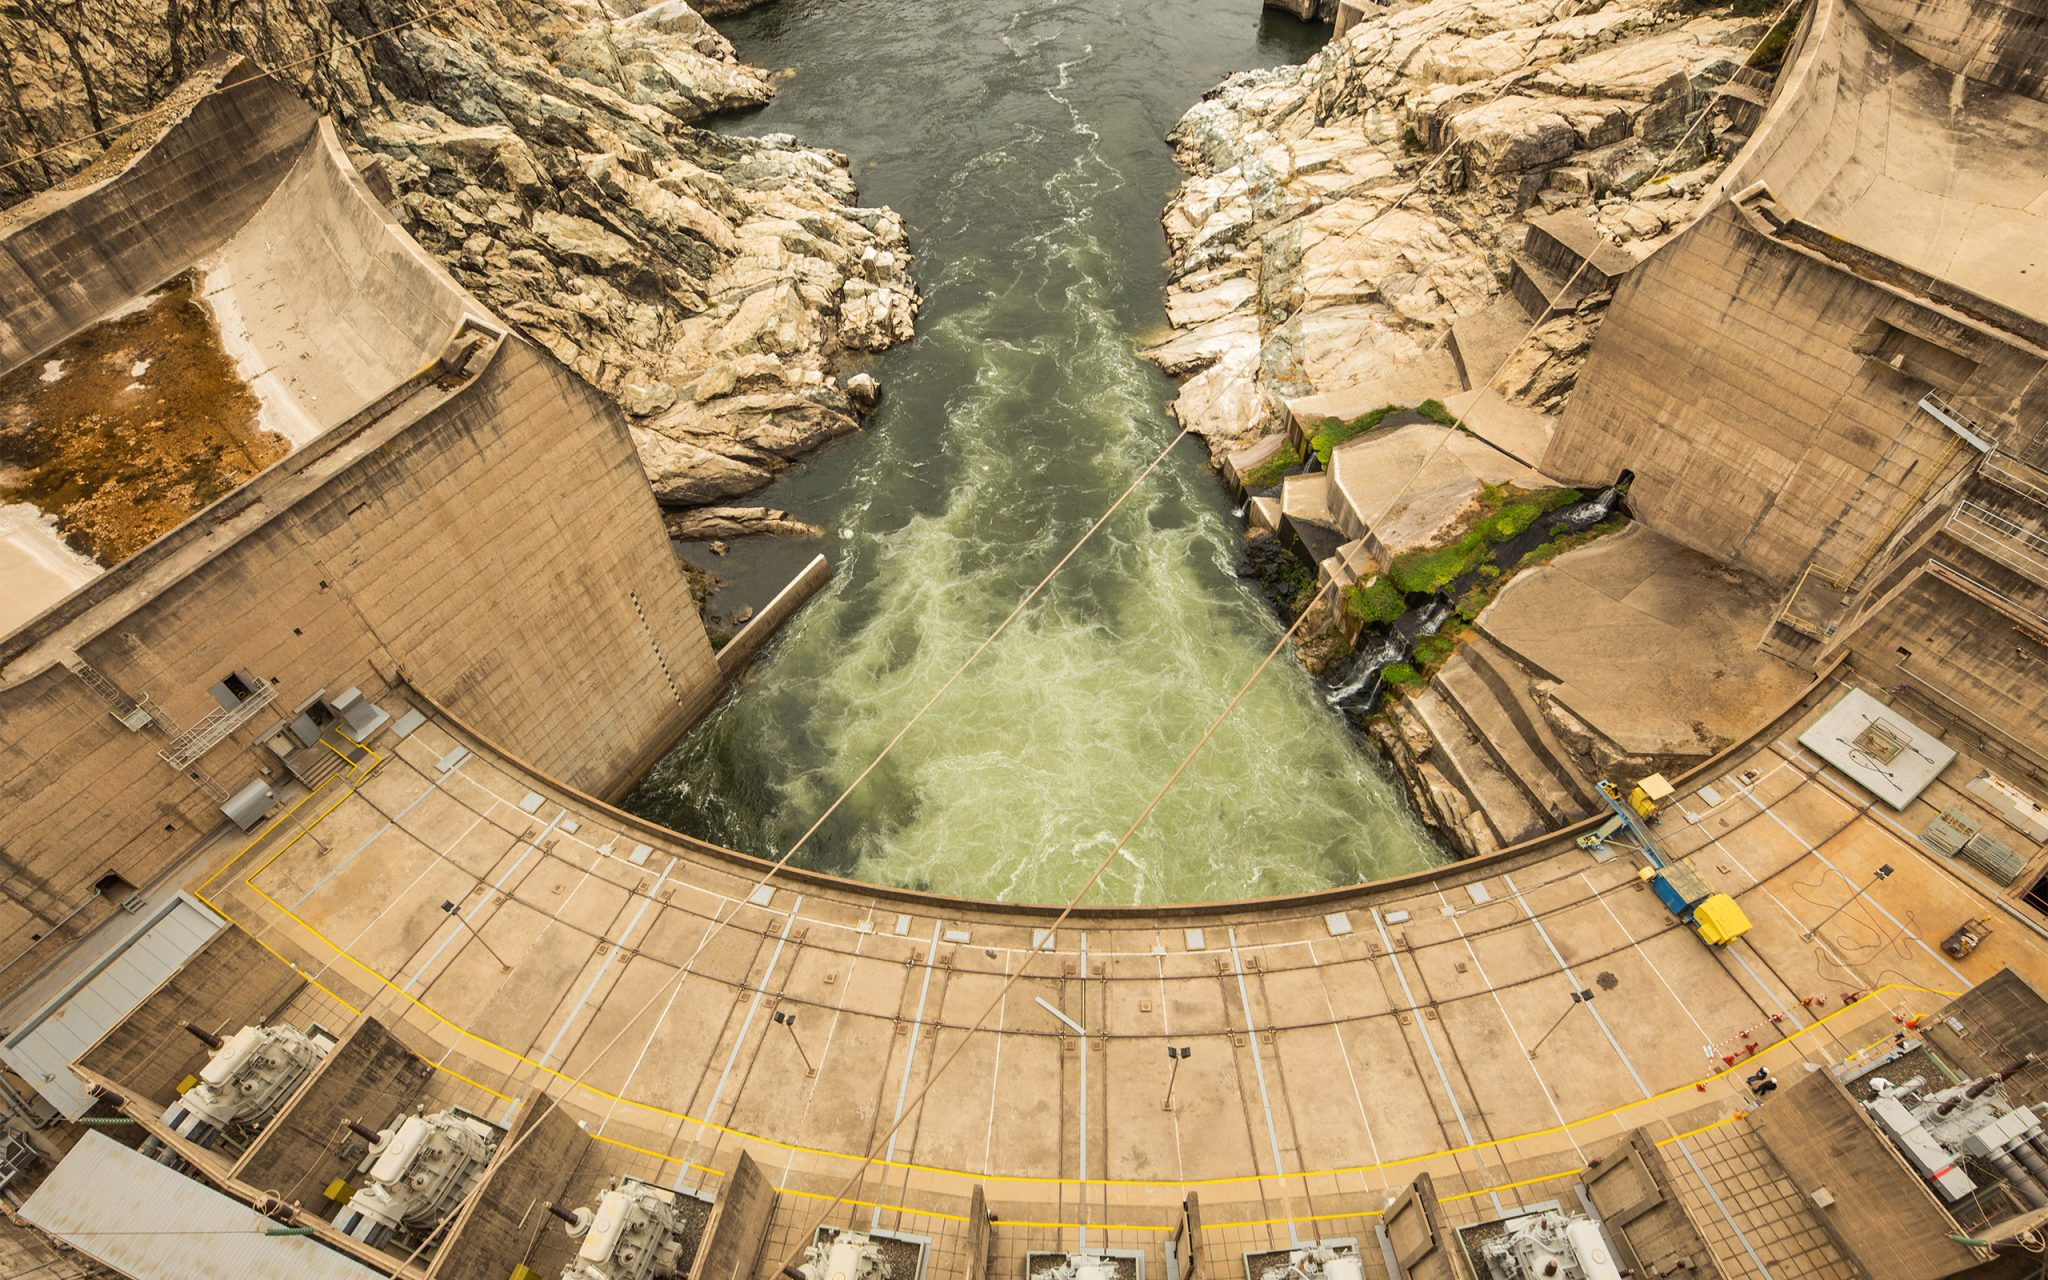 The Rapel Dam - a Hydroelectric Dam in General Bernardo O'Higgins Region, Chile. Carey Marks Photography